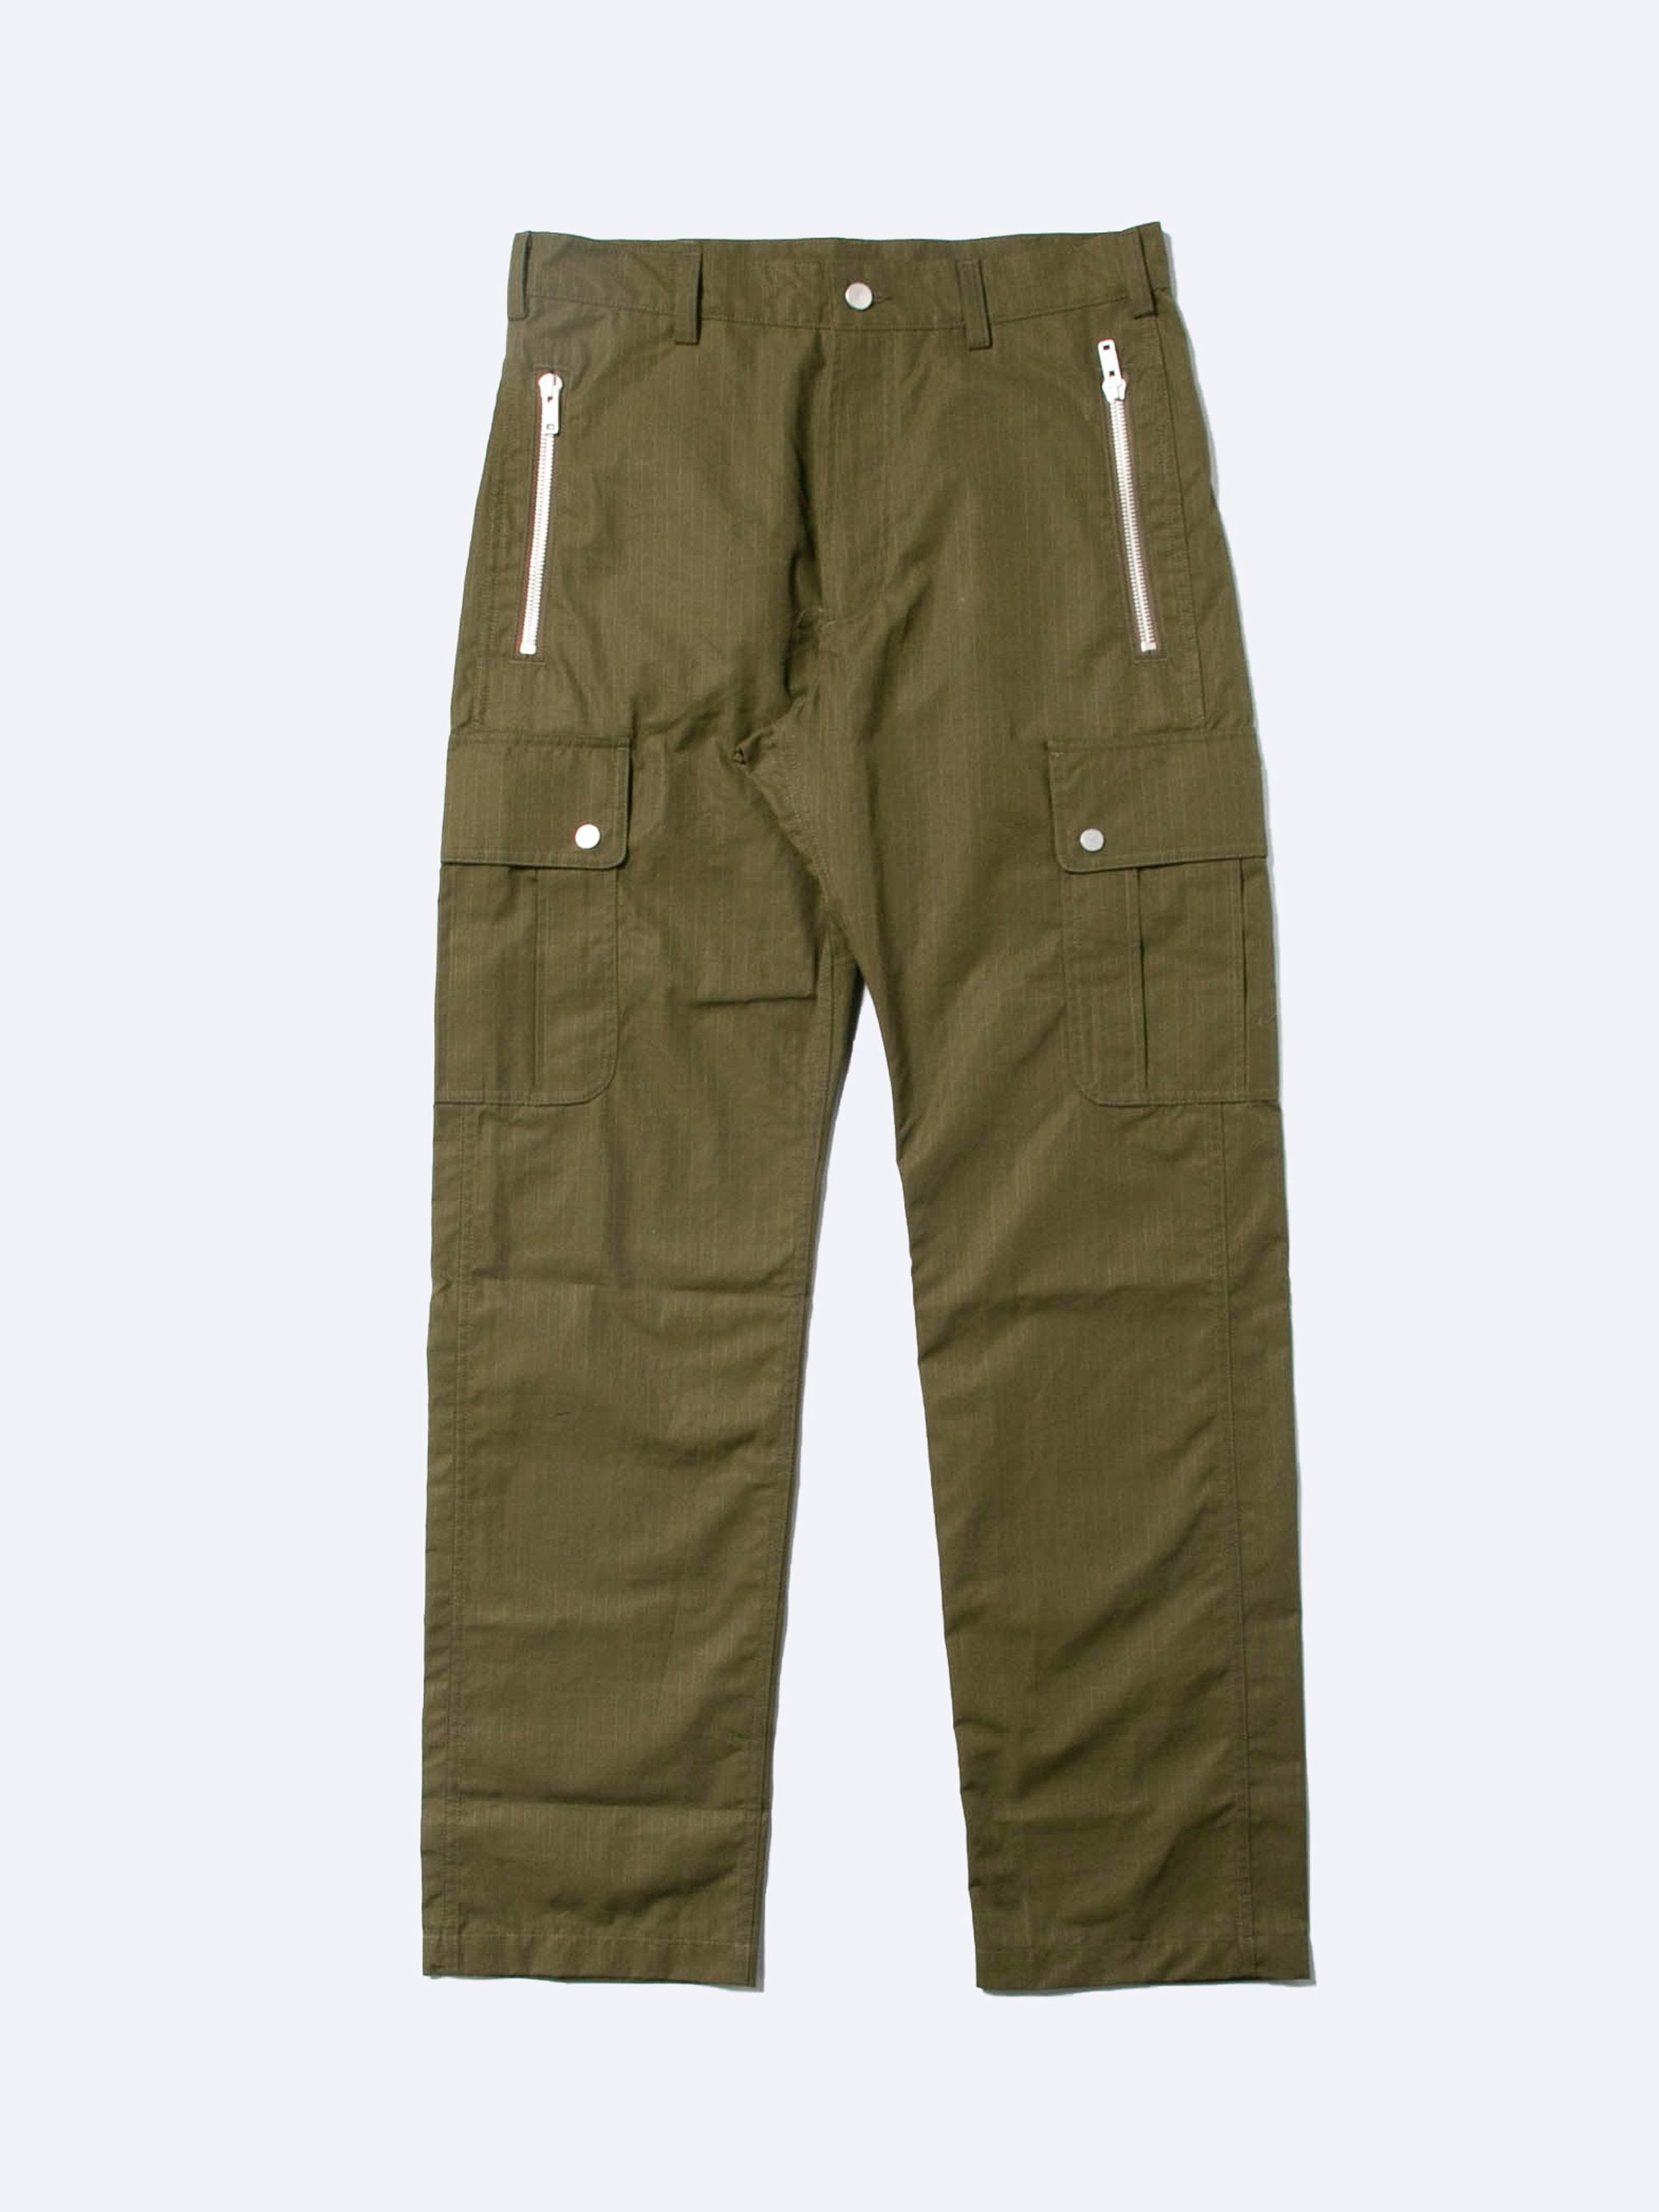 Olive Jungle Pants 1